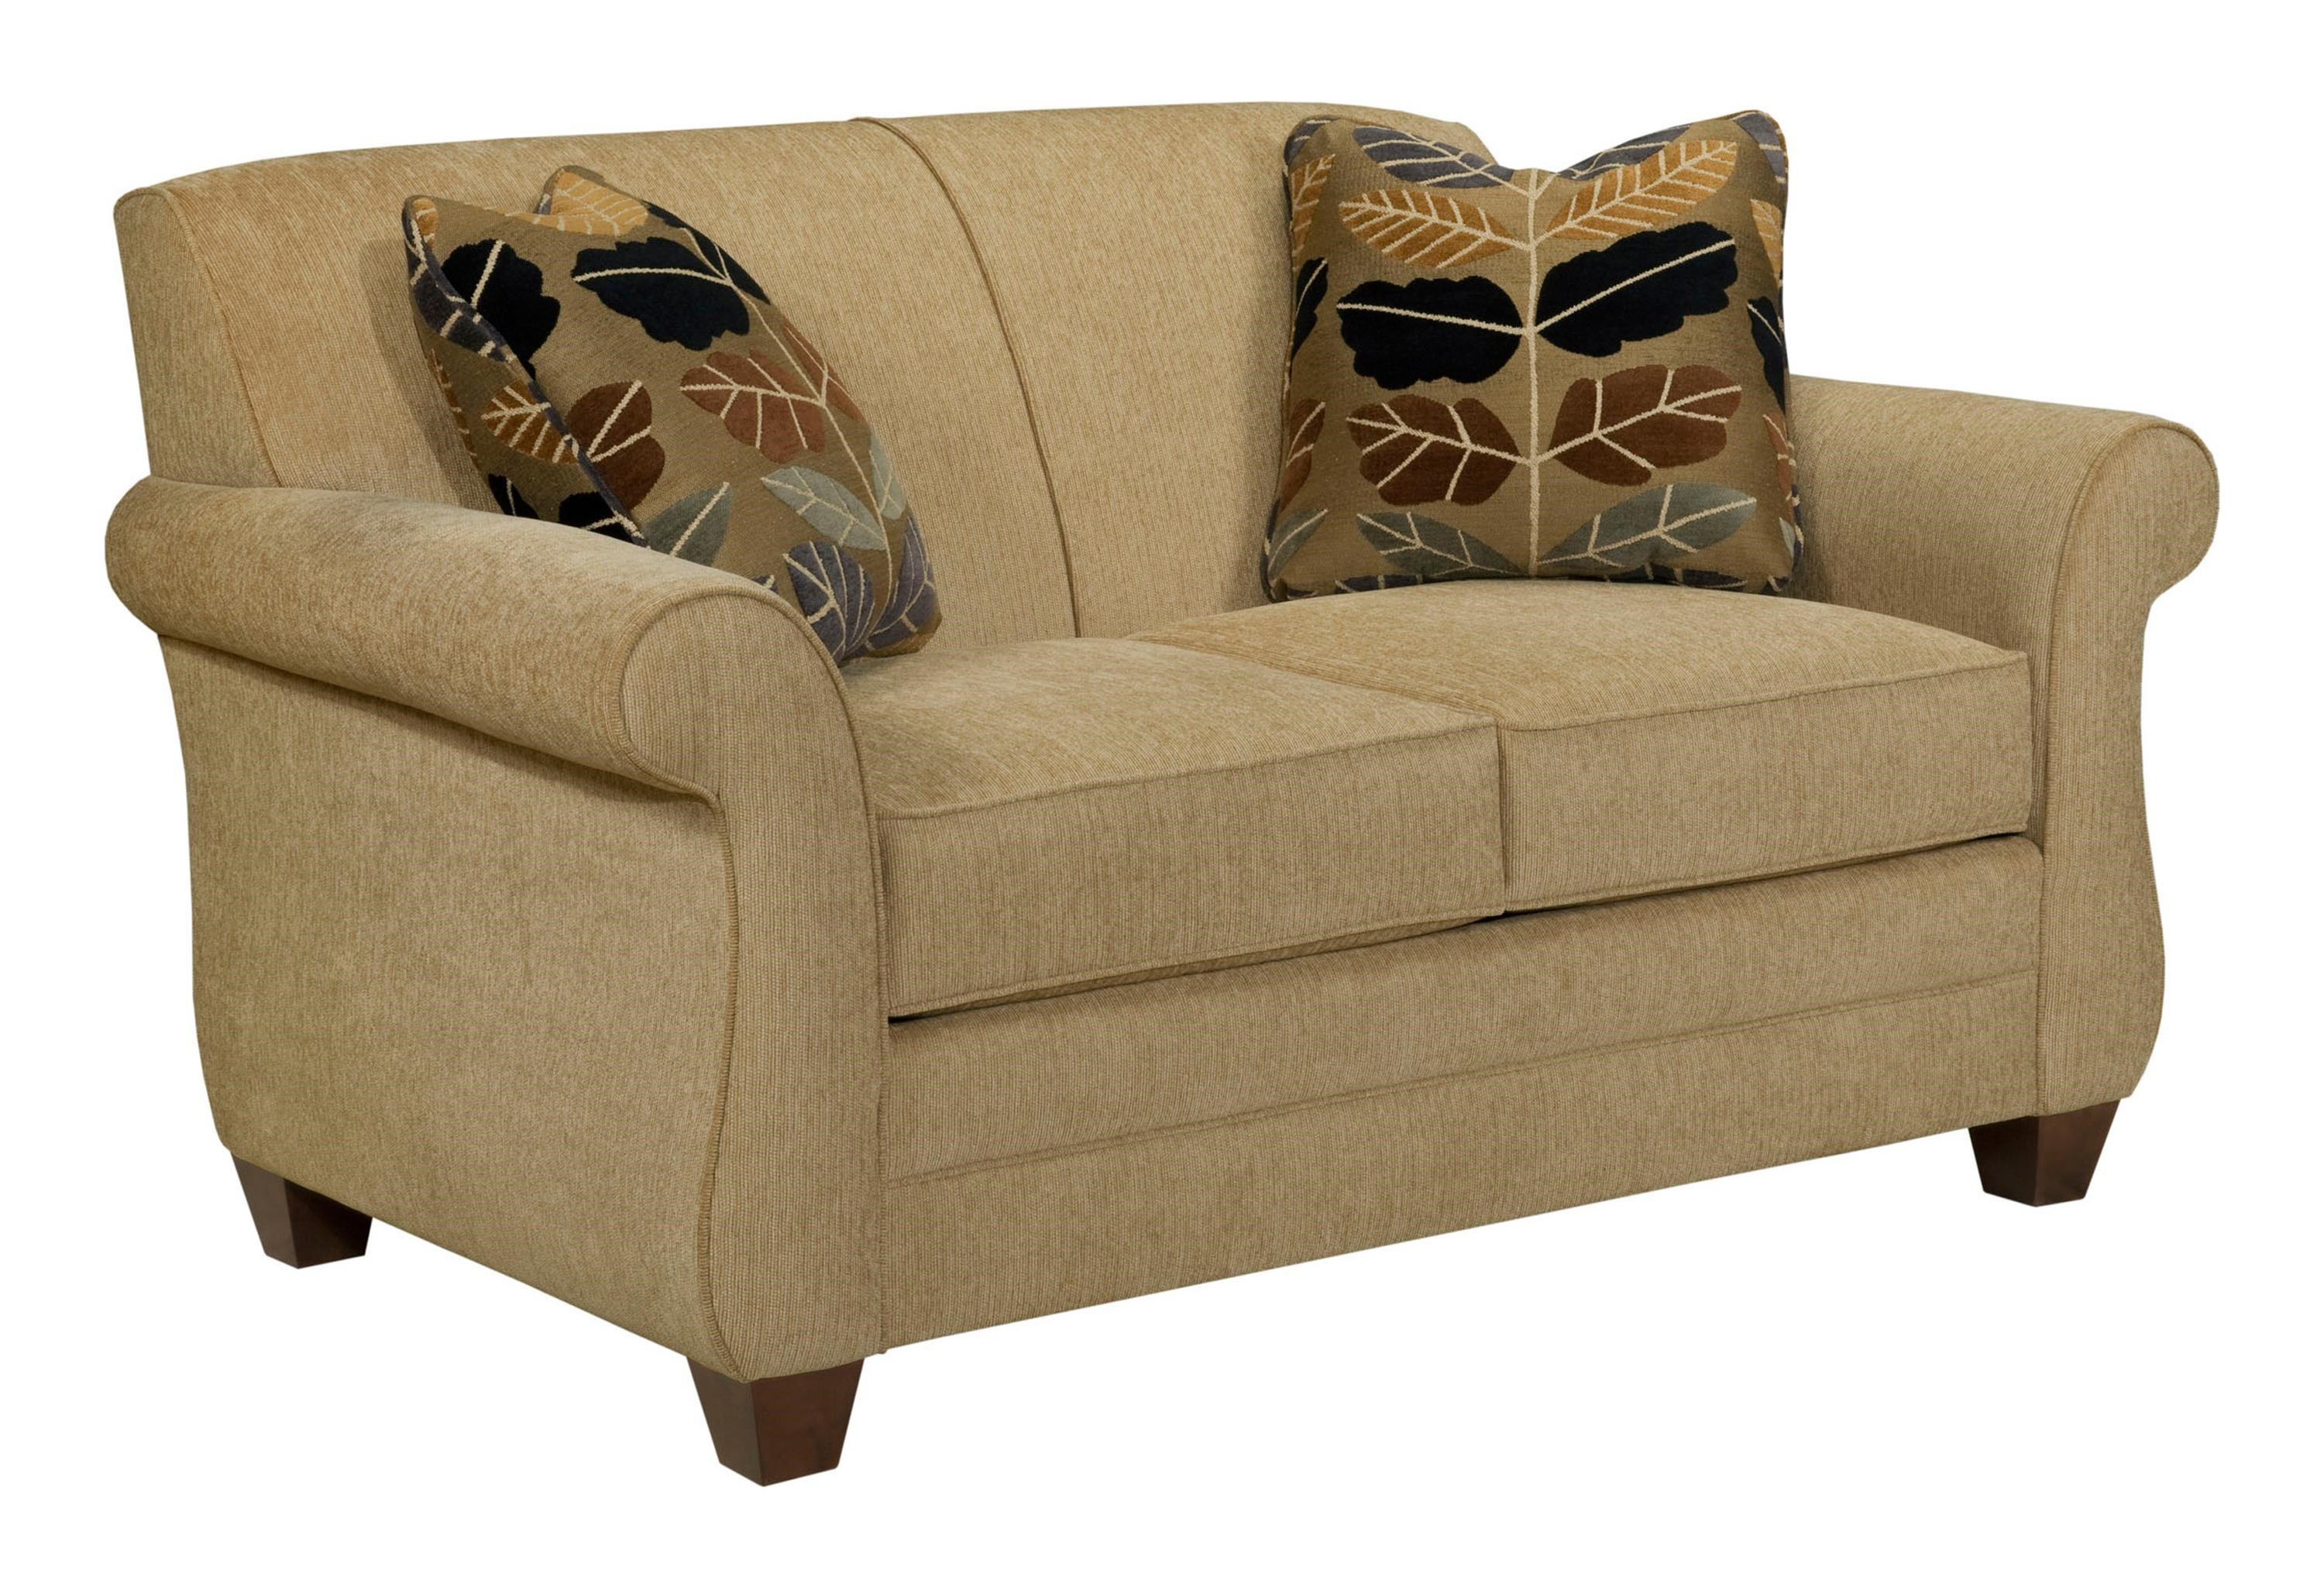 Broyhill Furniture GreenwichGreenwich Loveseat